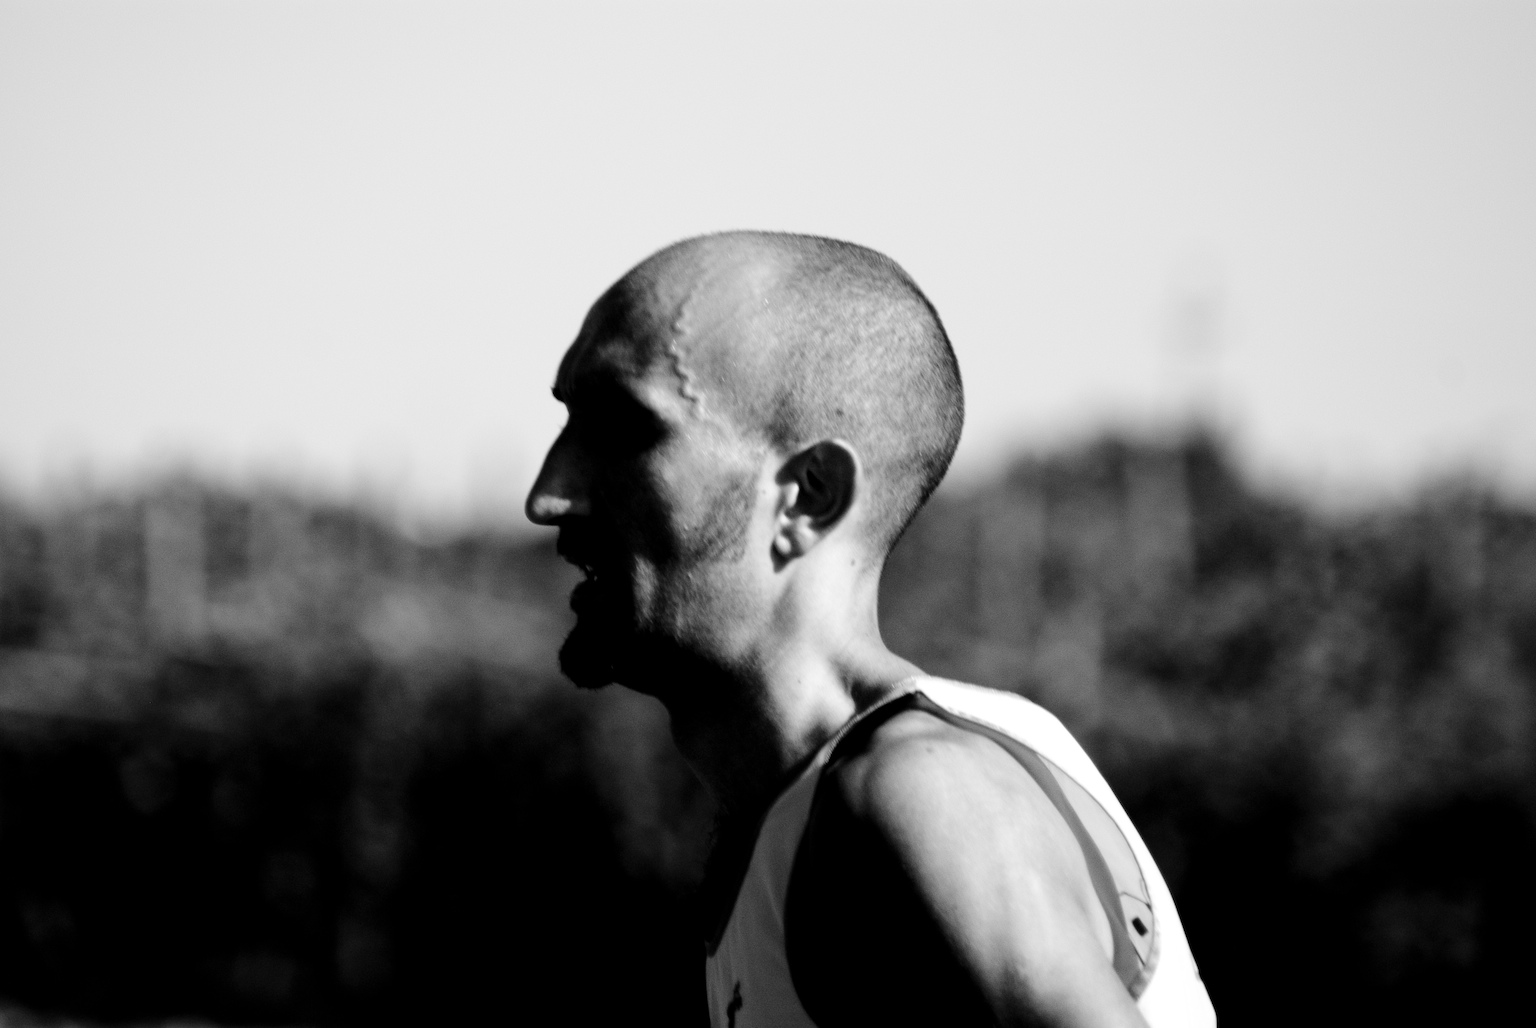 Marathon project | Carpi, Italy, 2009